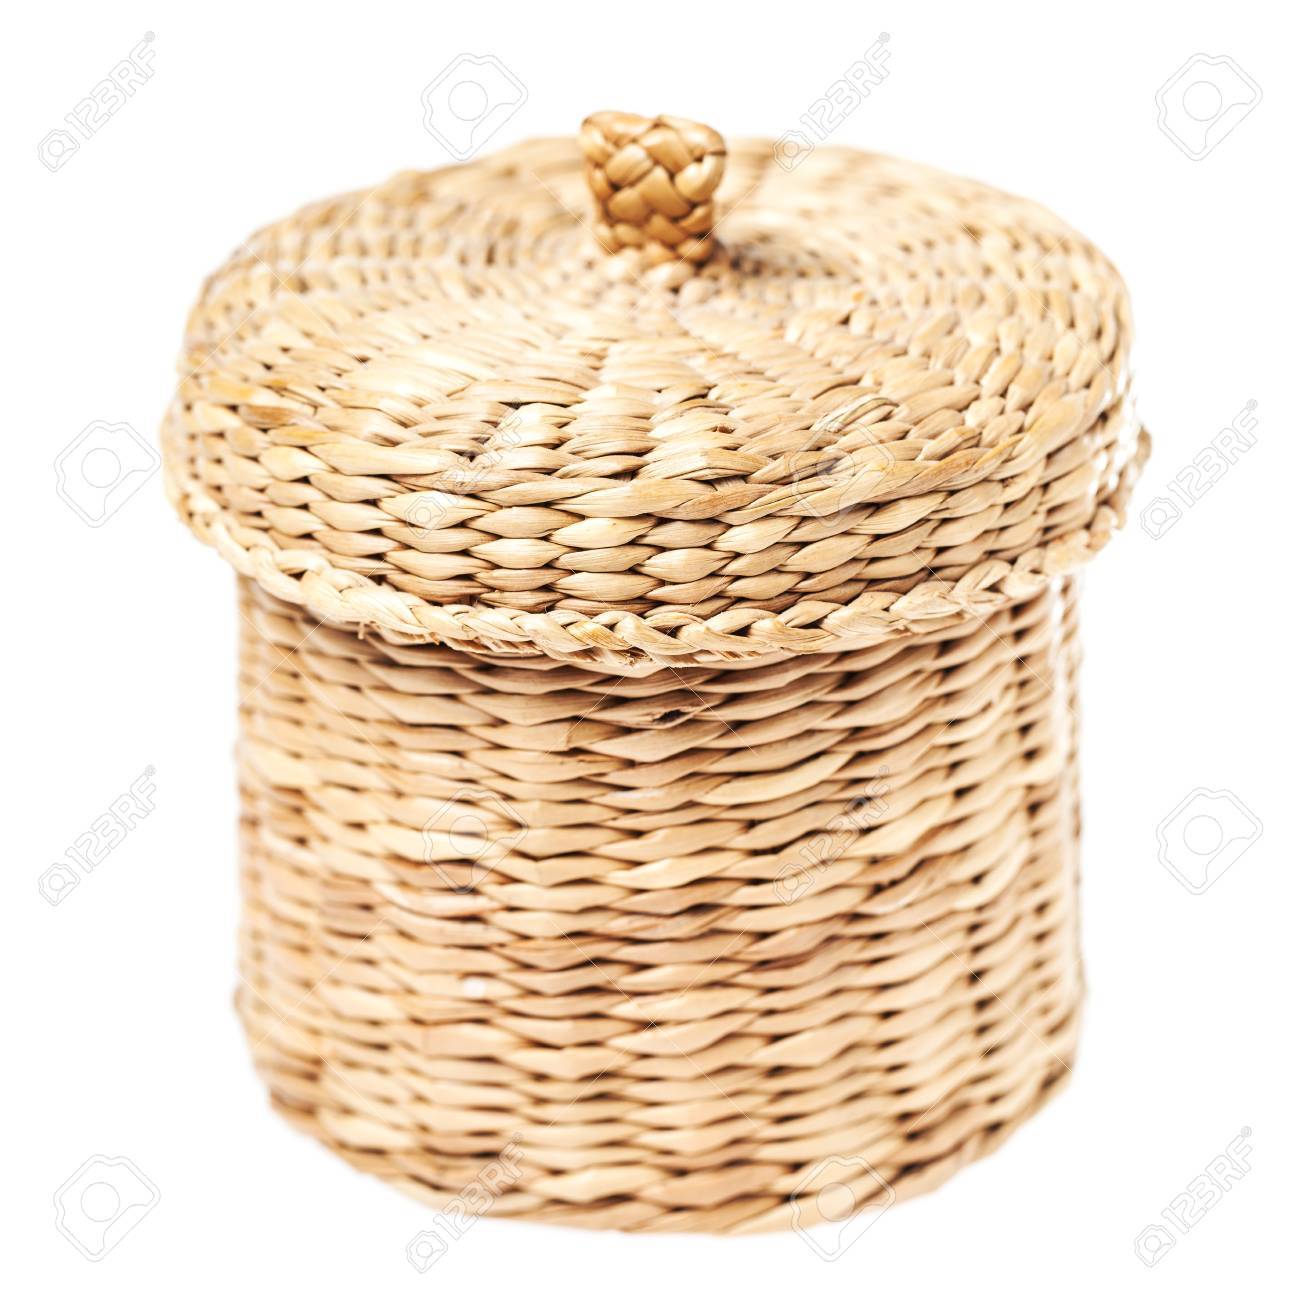 Light brown wicker basket with closed lid, isolated on white background Stock Photo - 21973893